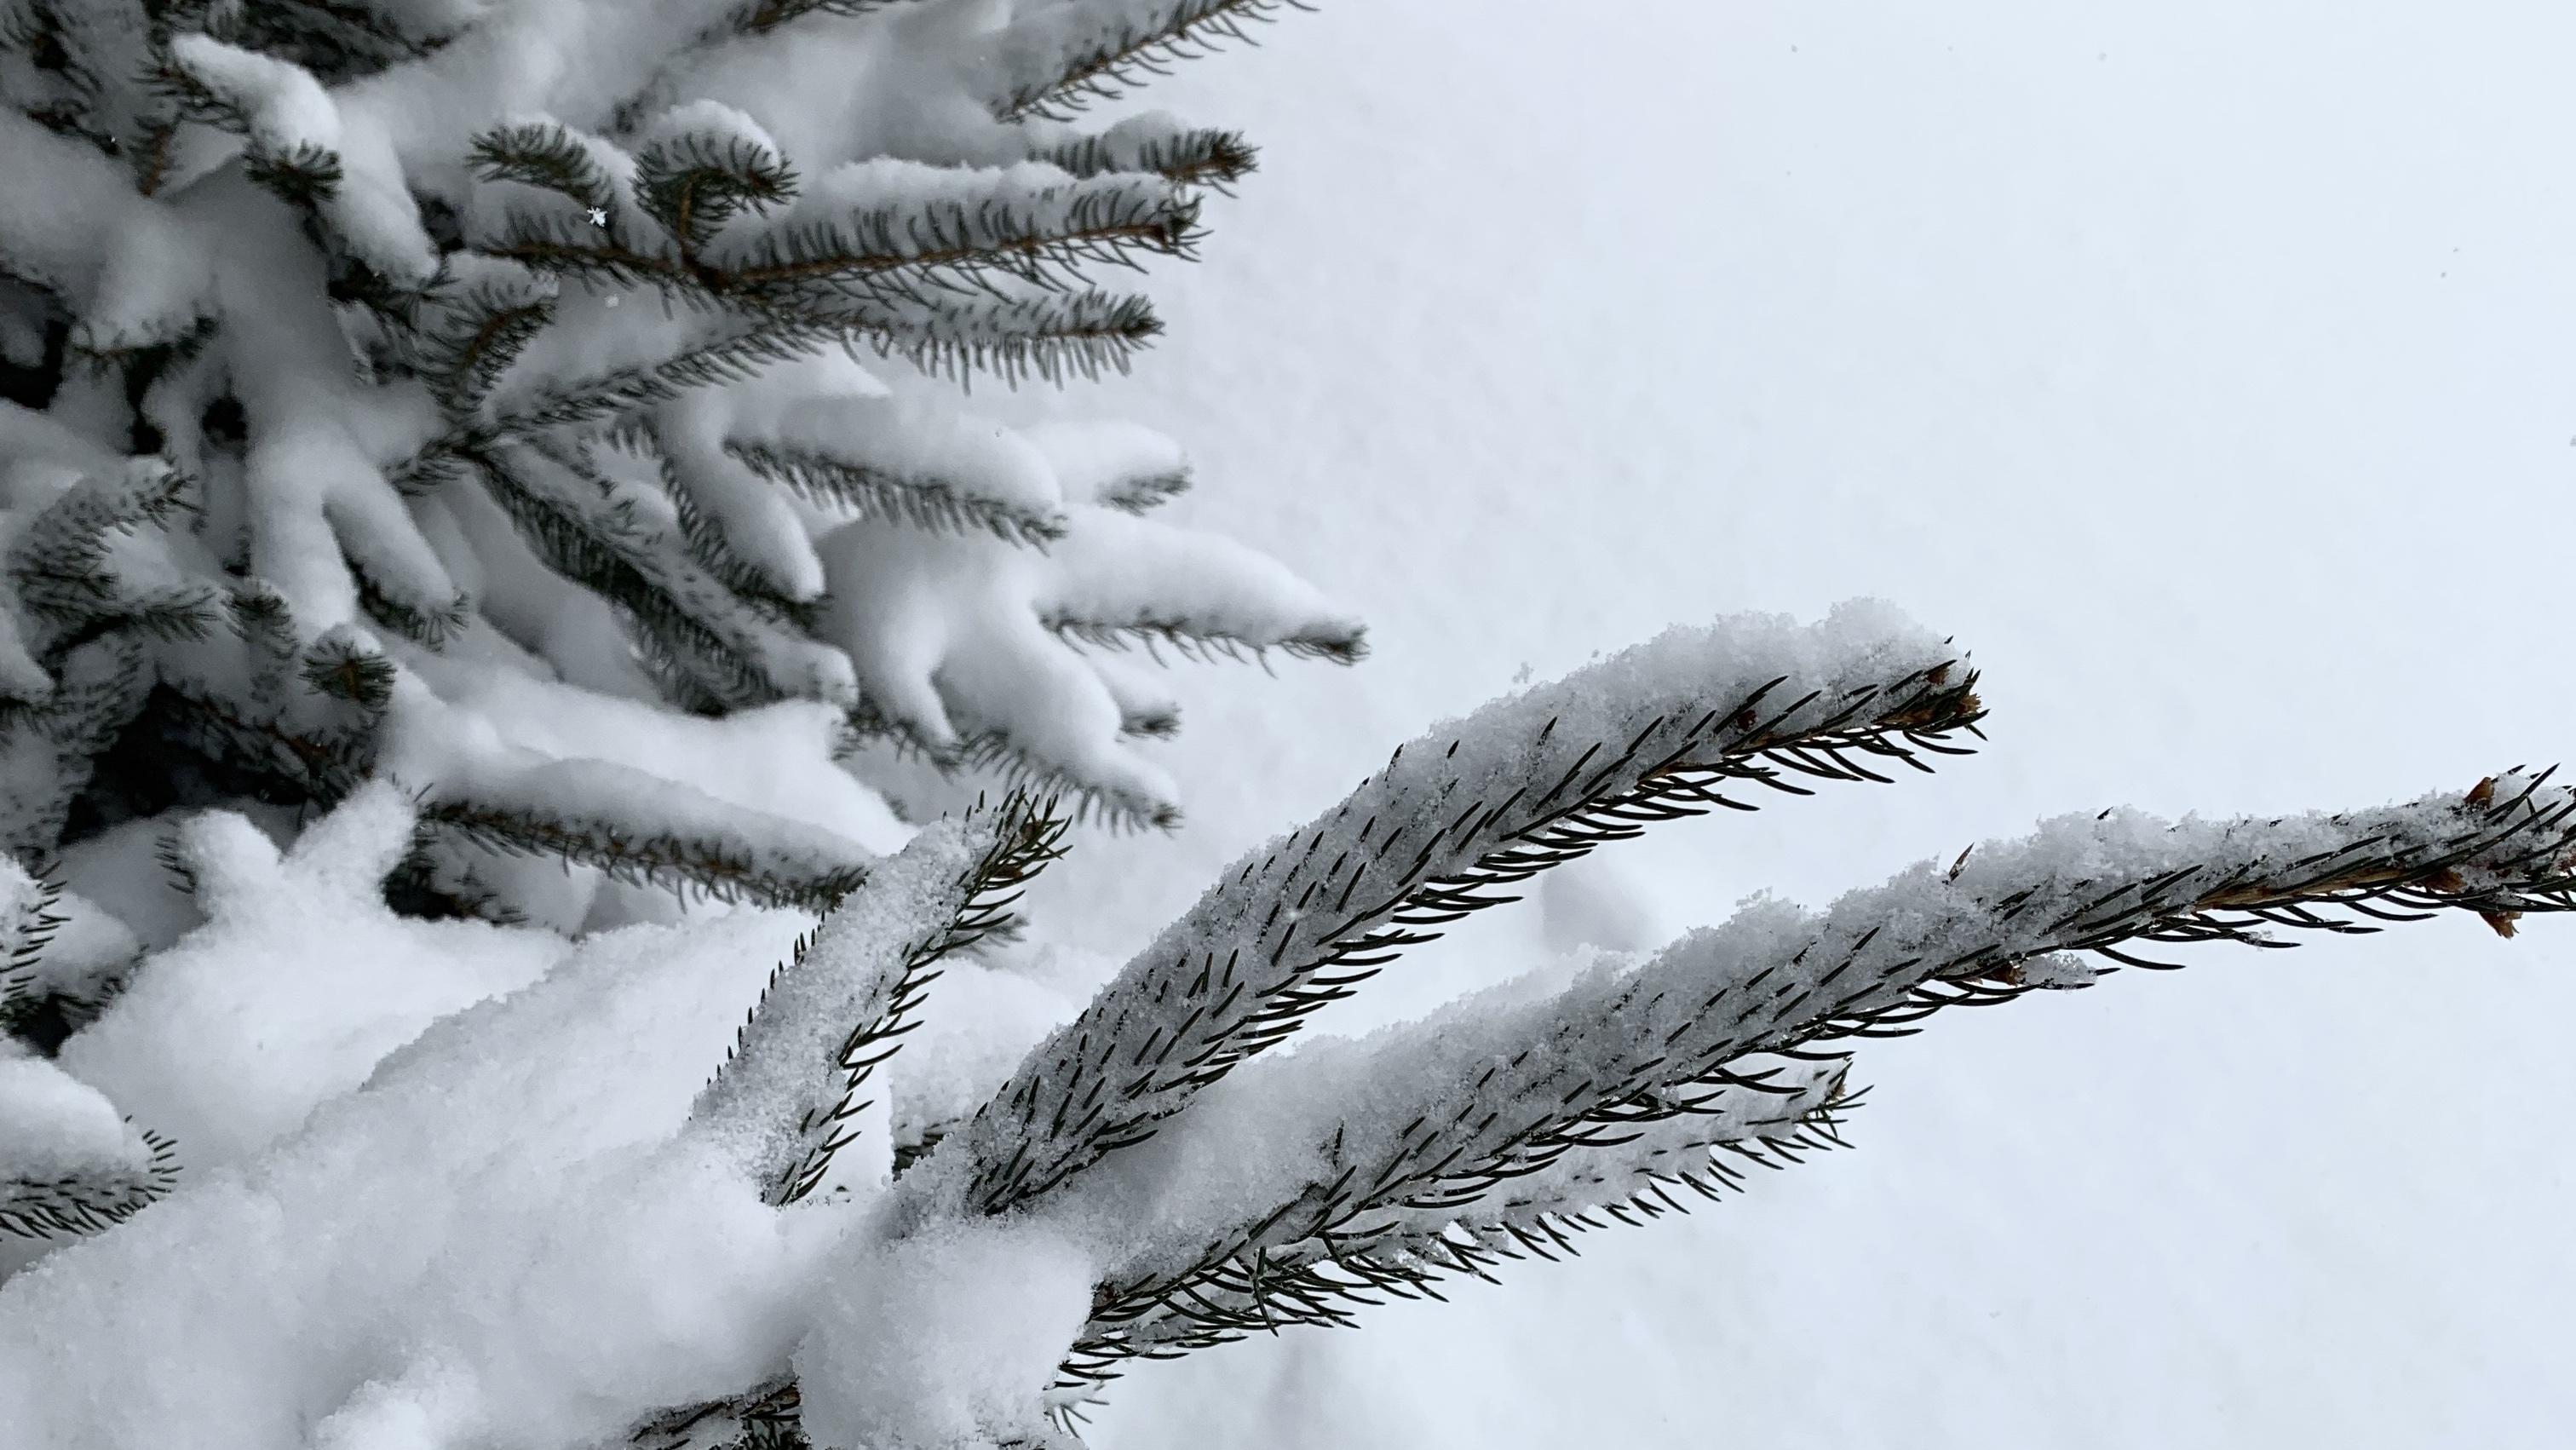 Snow on evergreen branch